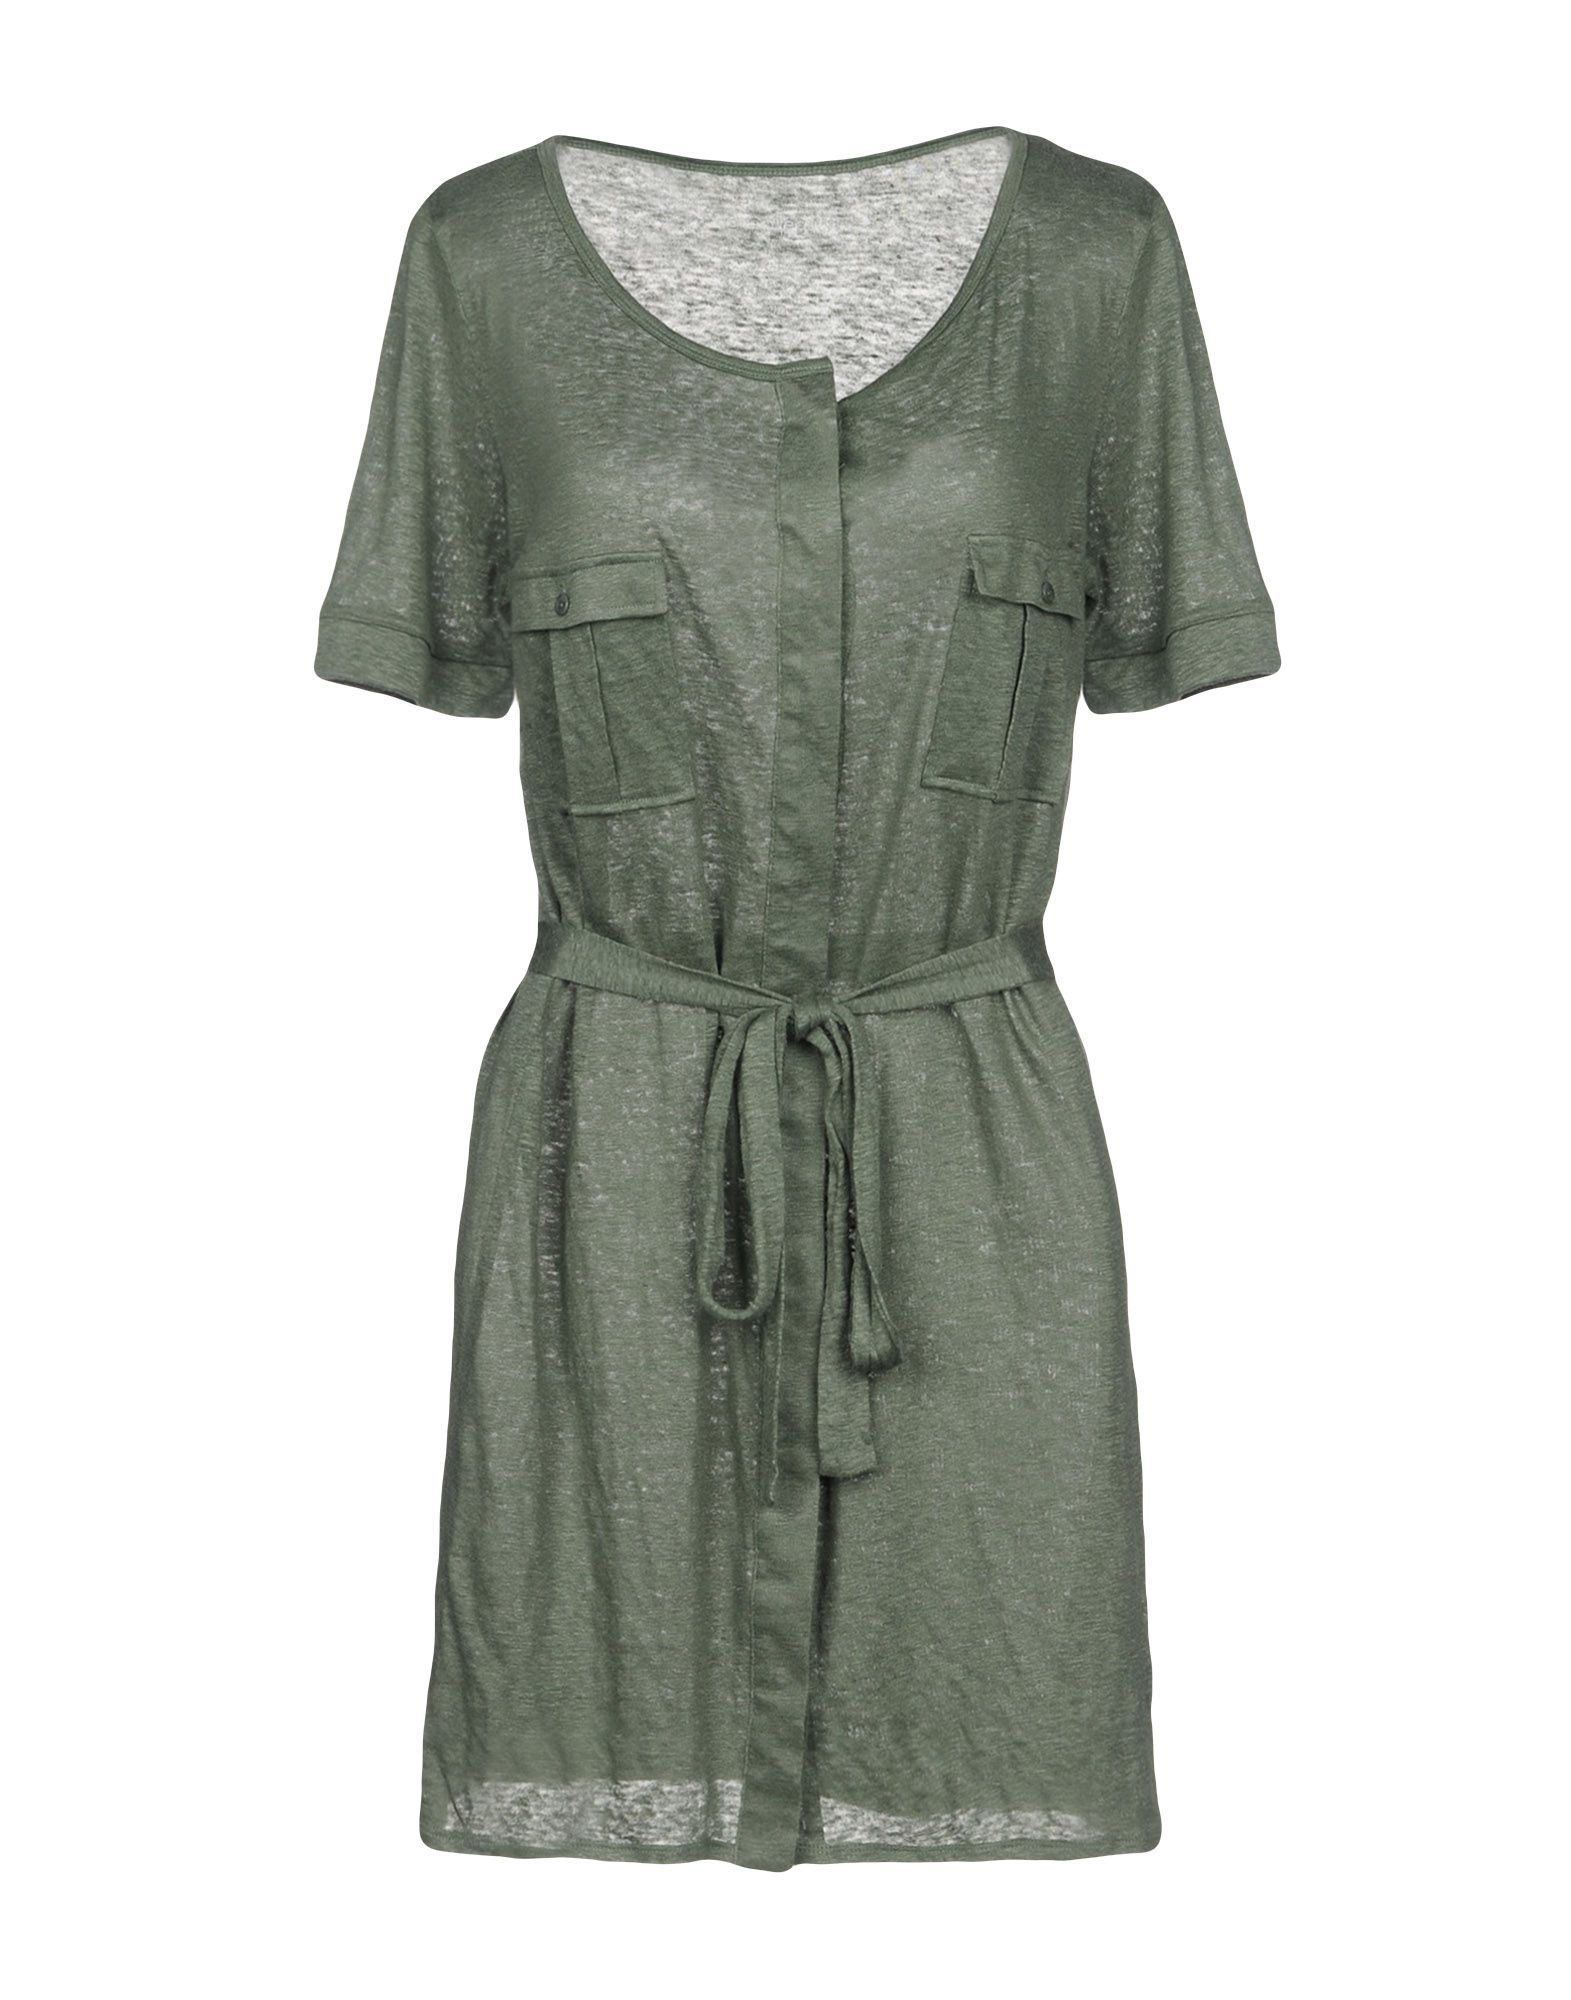 FINE COLLECTION Short Dress in Military Green